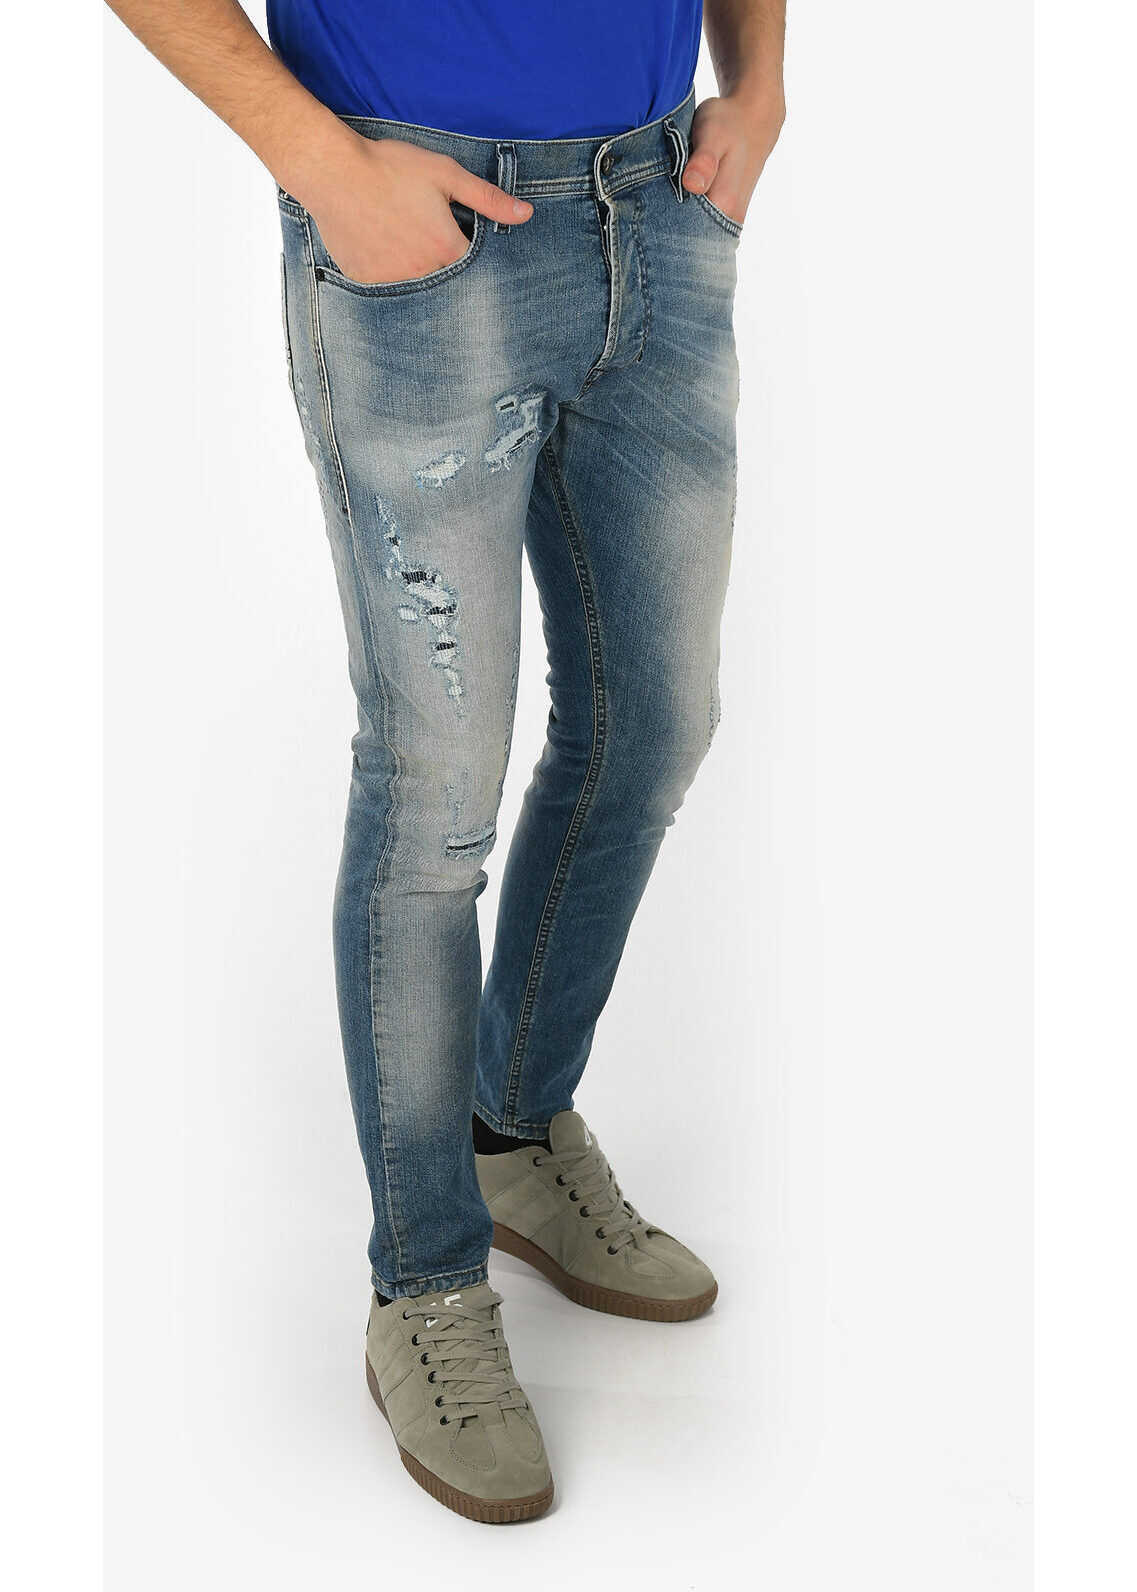 Diesel D.N.A. 16cm Stone Washed TEPPHAR Slim Fit Jeans L30 BLUE imagine